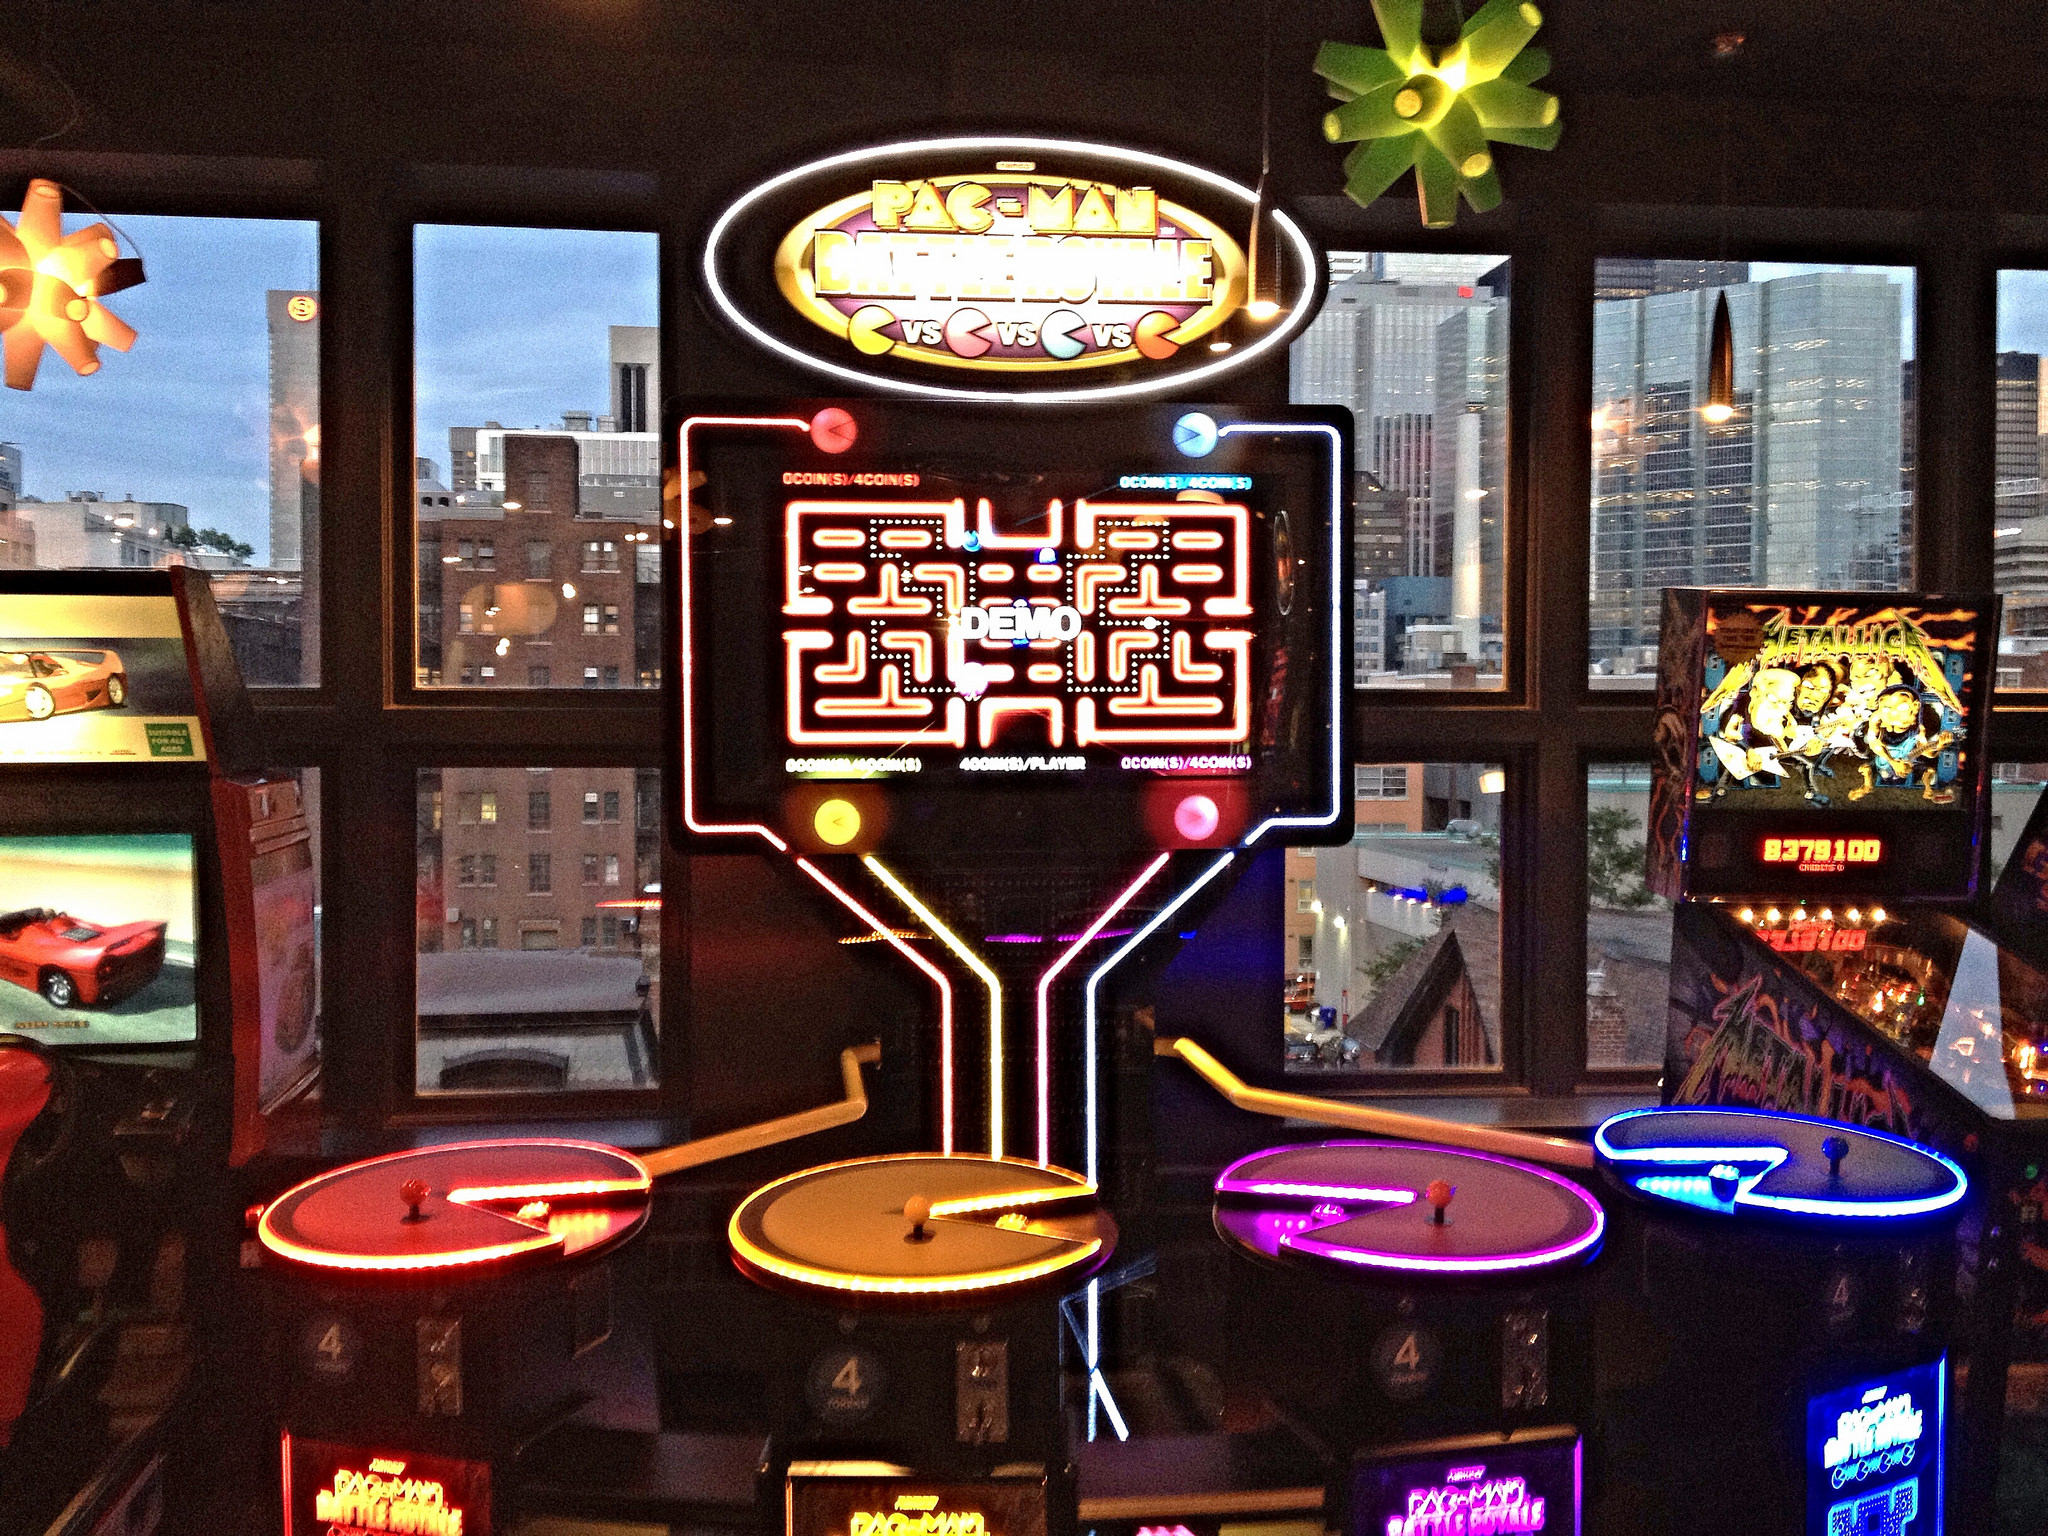 4-player Pac-Man anyone?